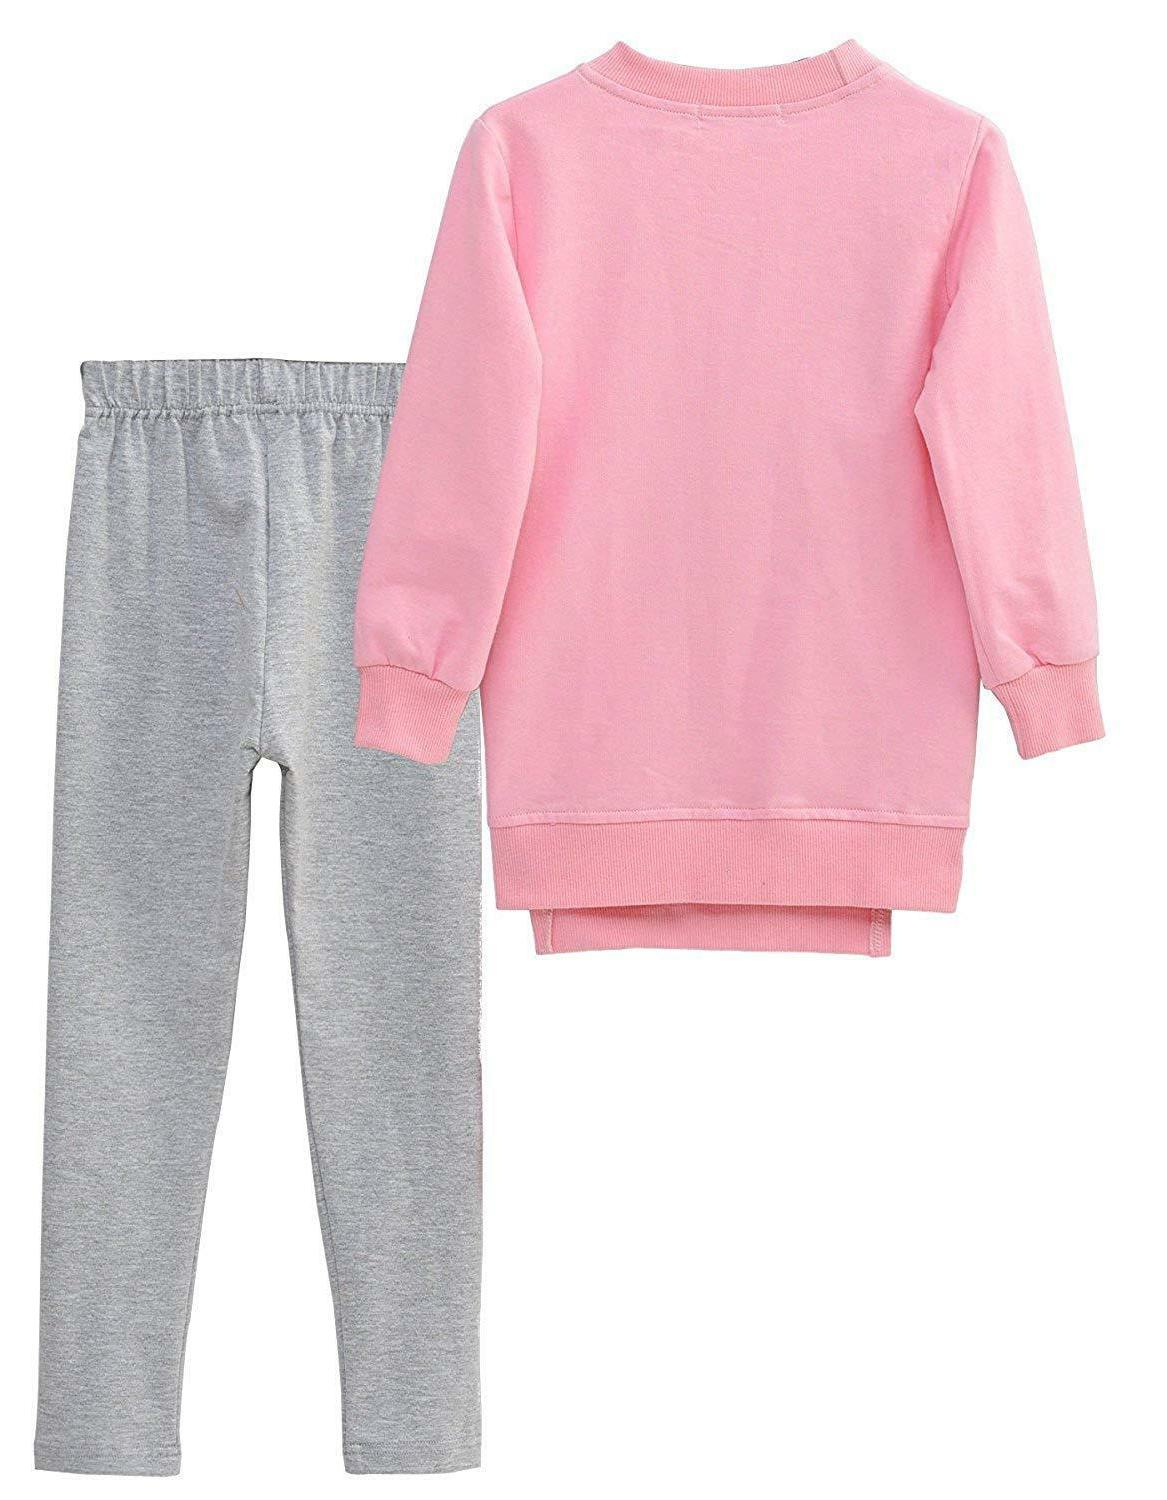 M Girls' Pieces Long Sleeve Clothes